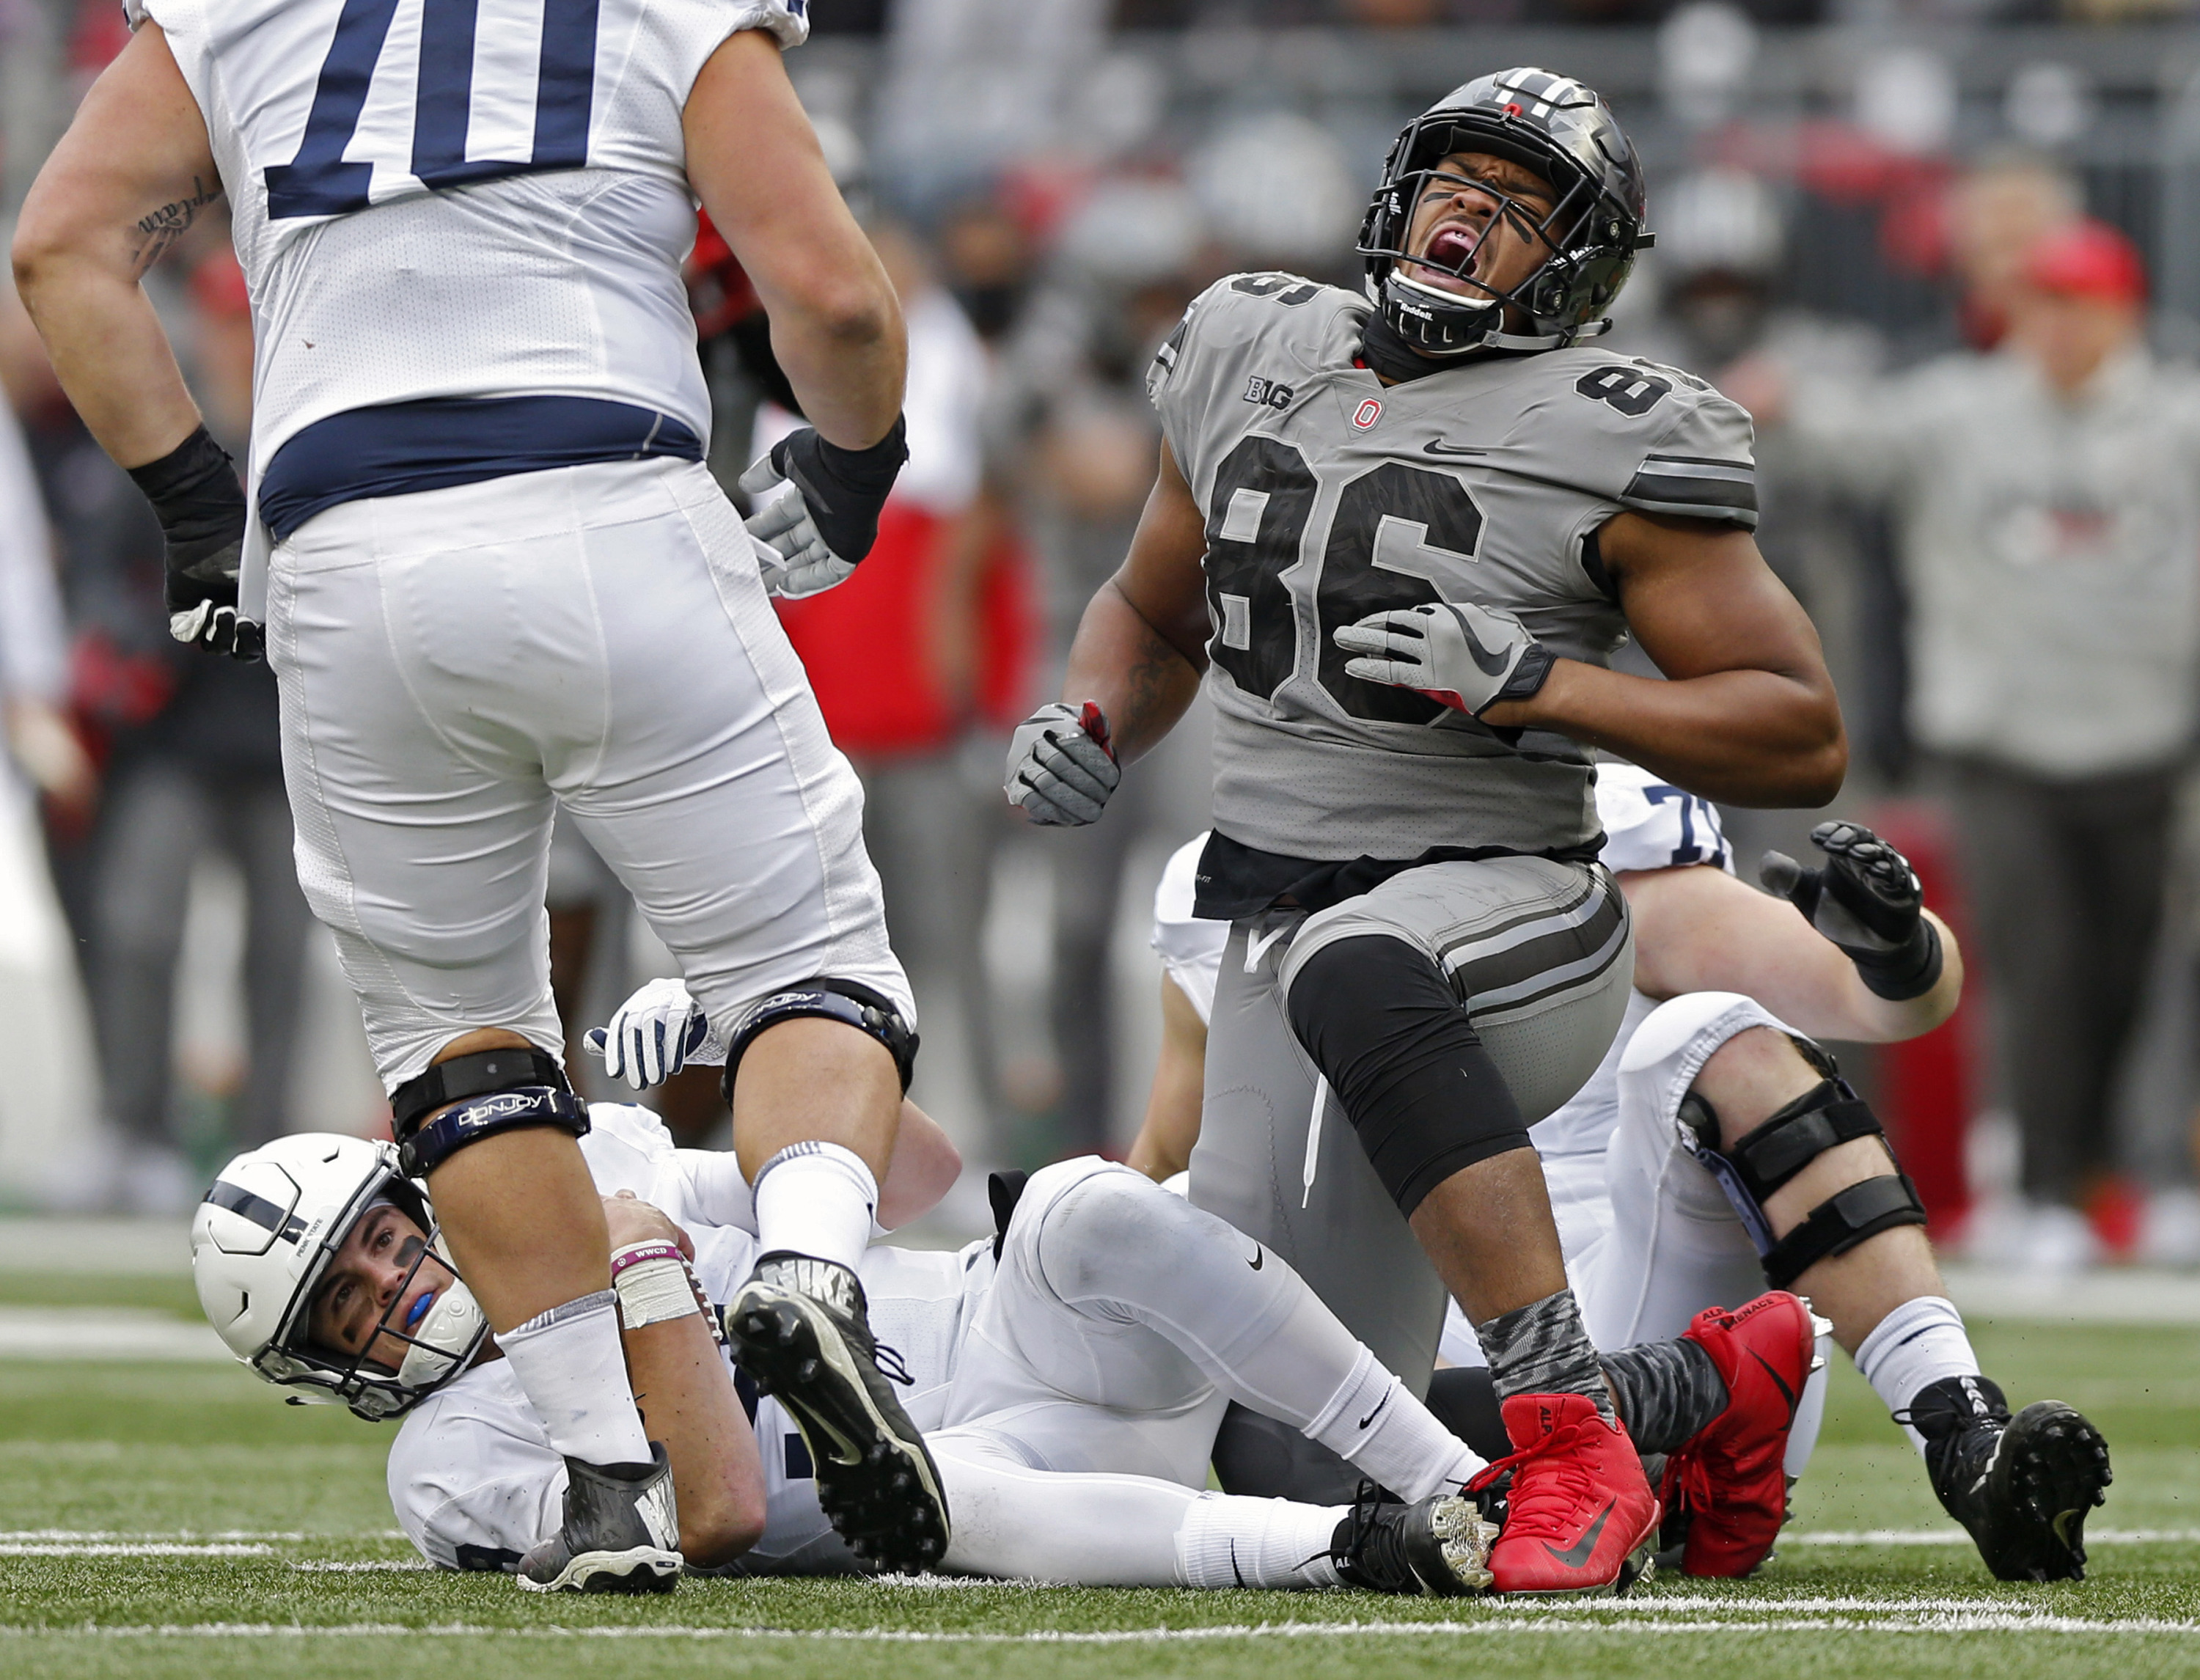 Ohio State Buckeyes defensive lineman Dre'Mont Jones (86) sacks Penn State Nittany Lions quarterback Trace McSorley (9) during the 1st half of their game in Ohio Stadium on October 28, 2017.  [Kyle Robertson/Dispatch]